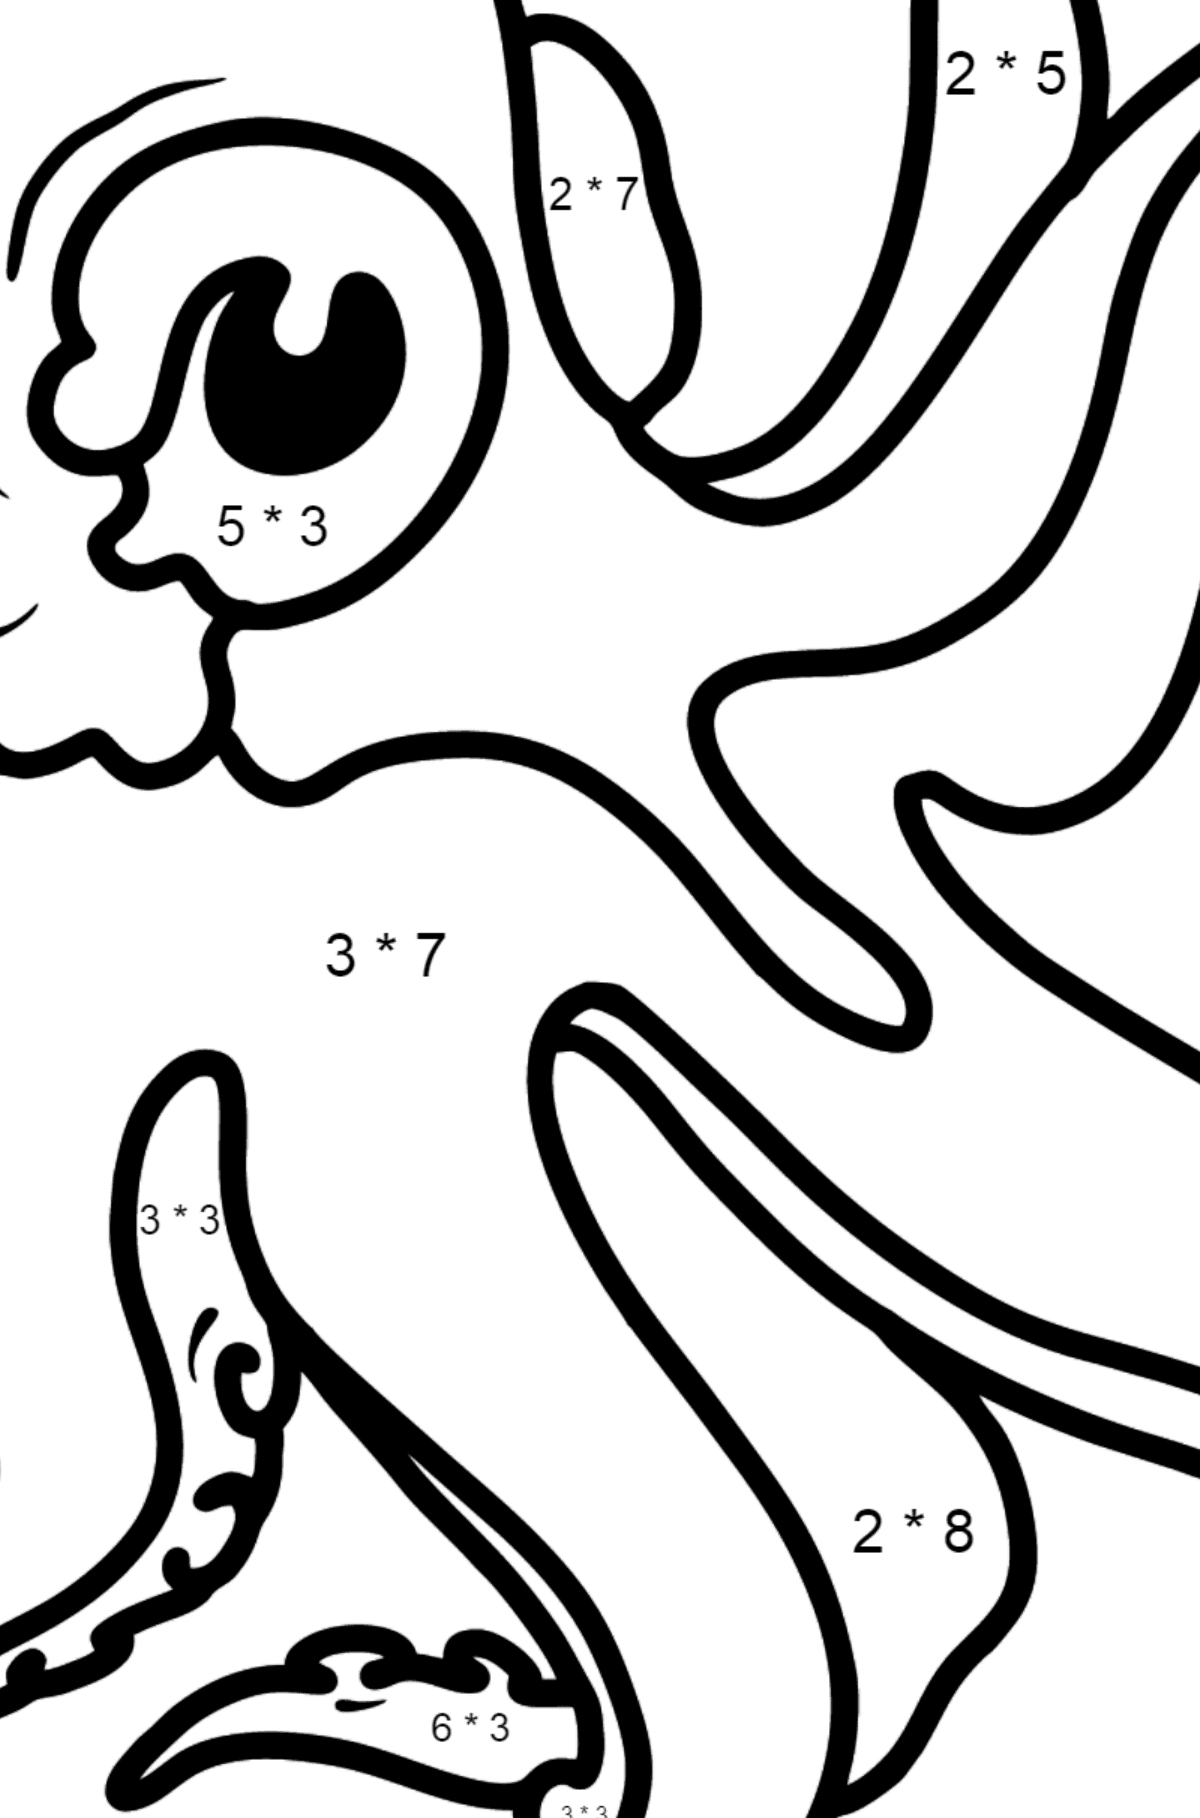 Octopus coloring page - Math Coloring - Multiplication for Kids